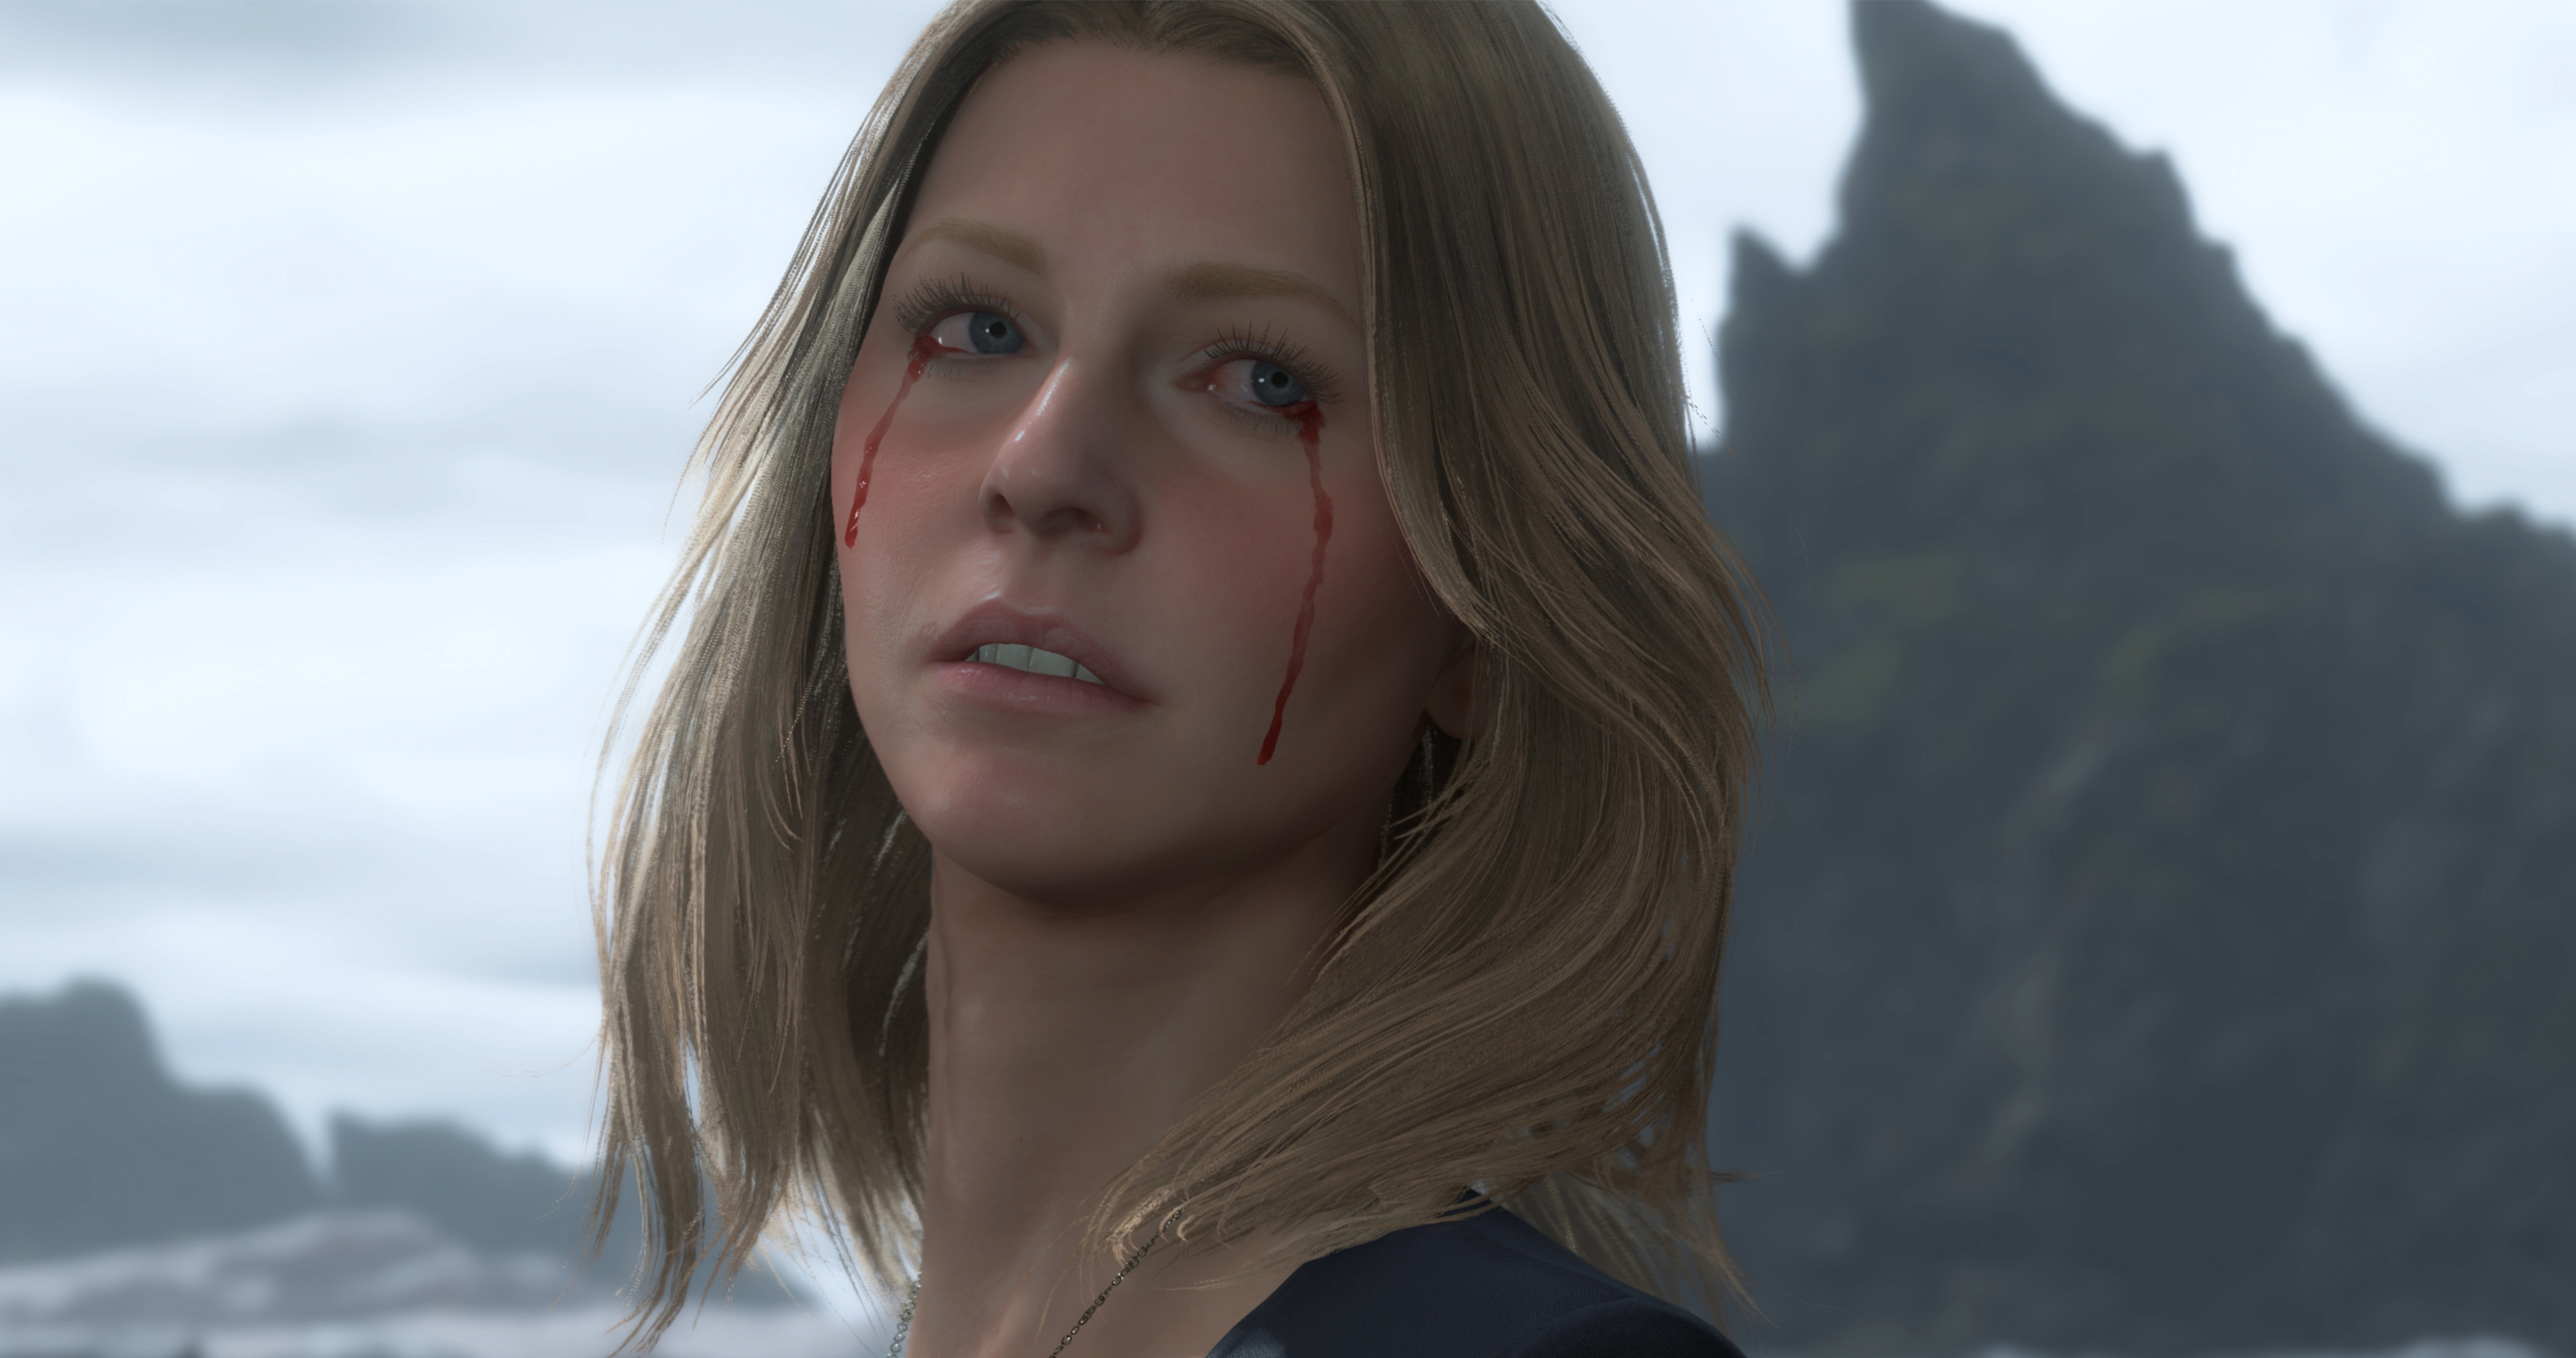 death stranding ps5 game